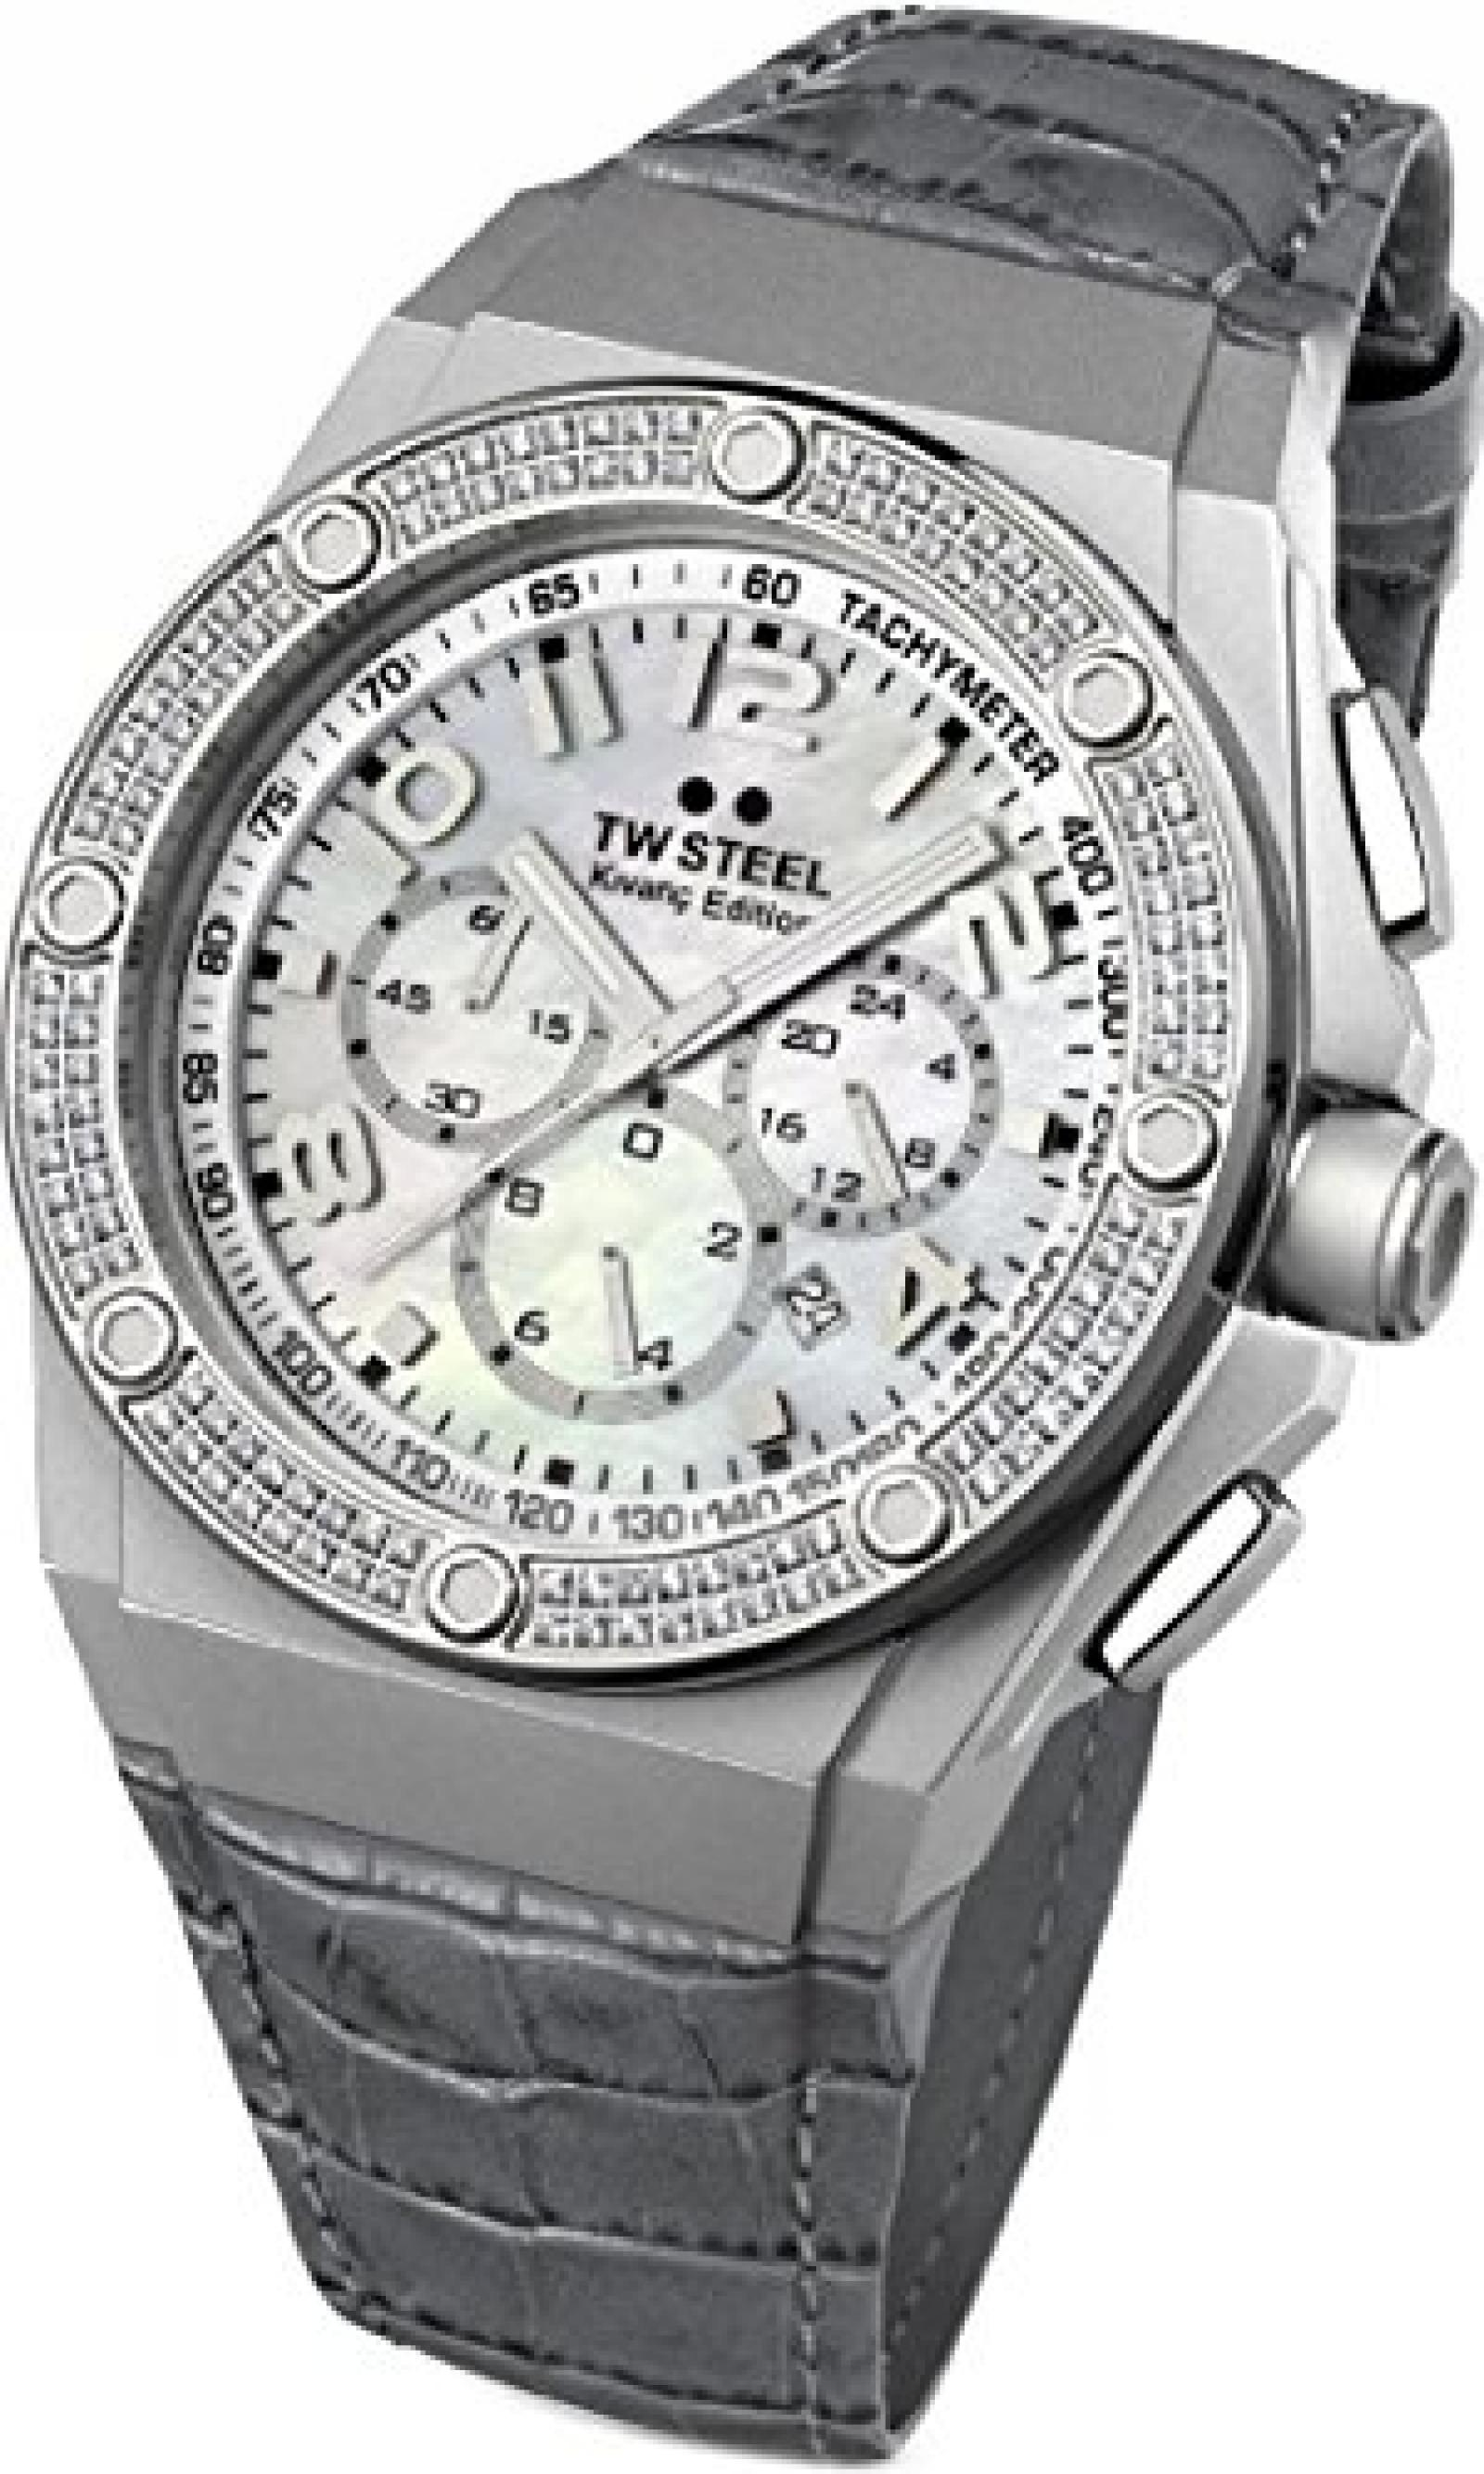 TW Steel CEO Tech Chrono TWCE4005 Damenchronograph mit echten Diamanten